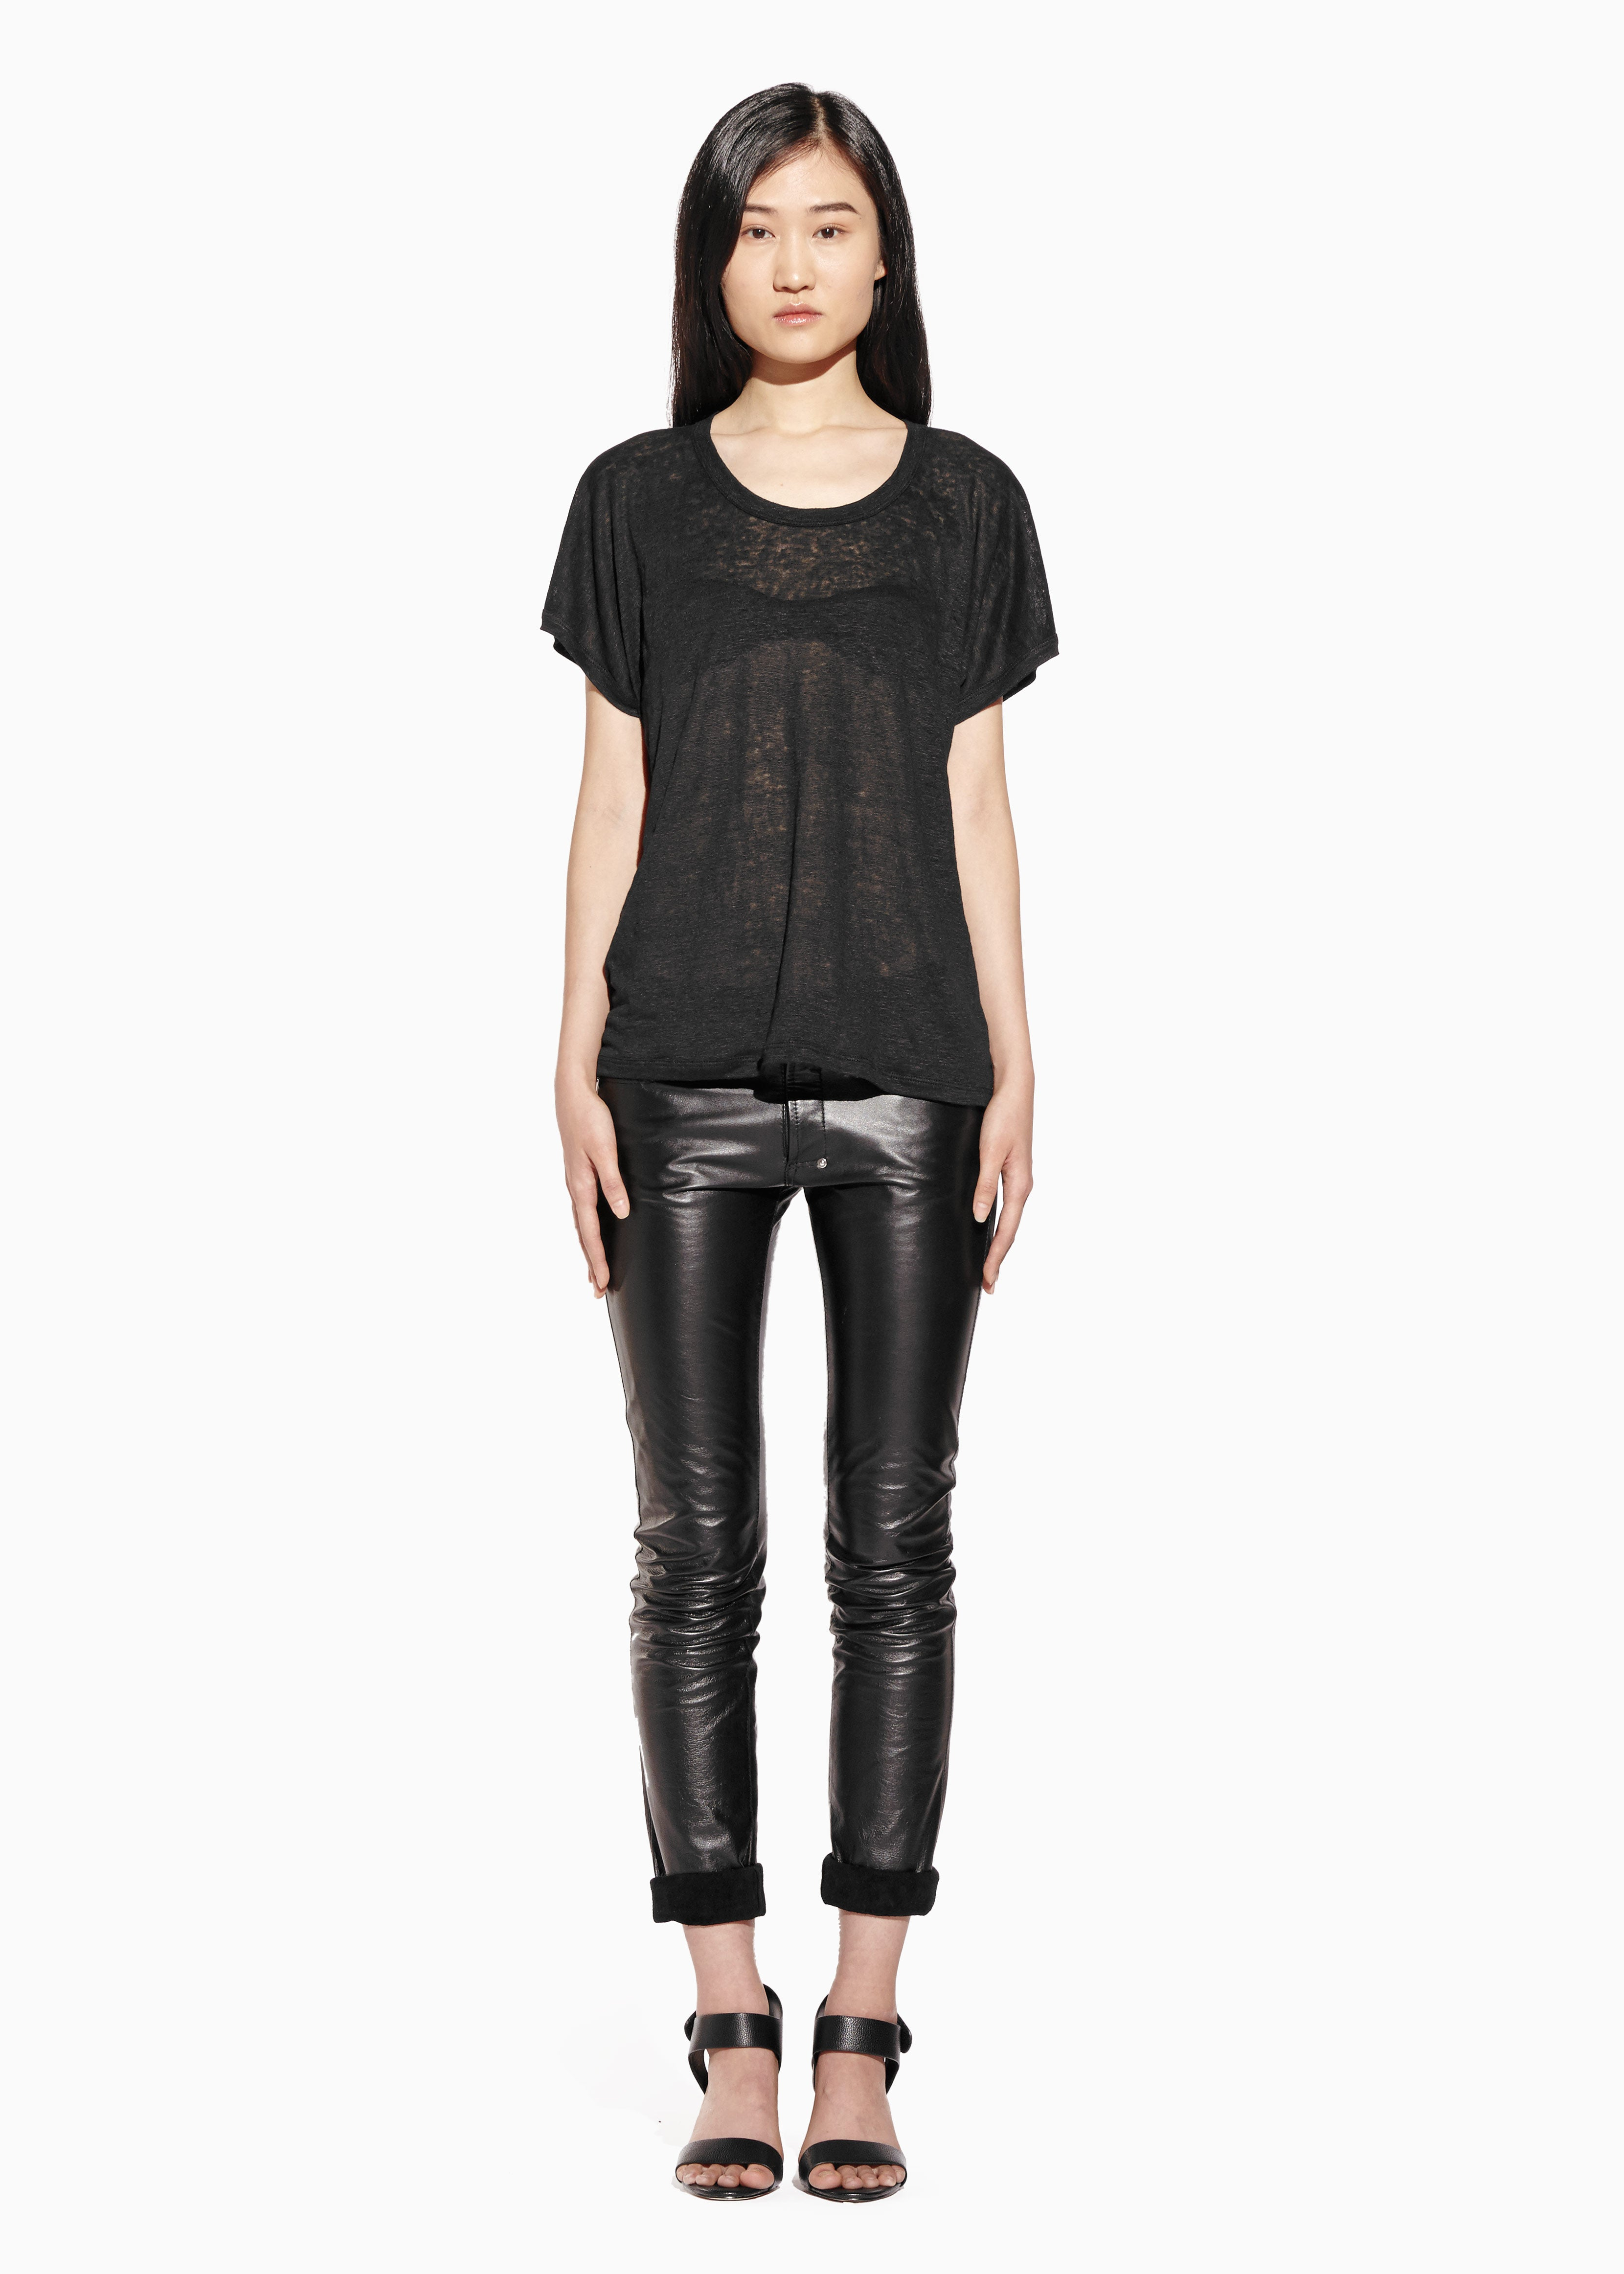 FREEDOM T TOP Linen Jersey